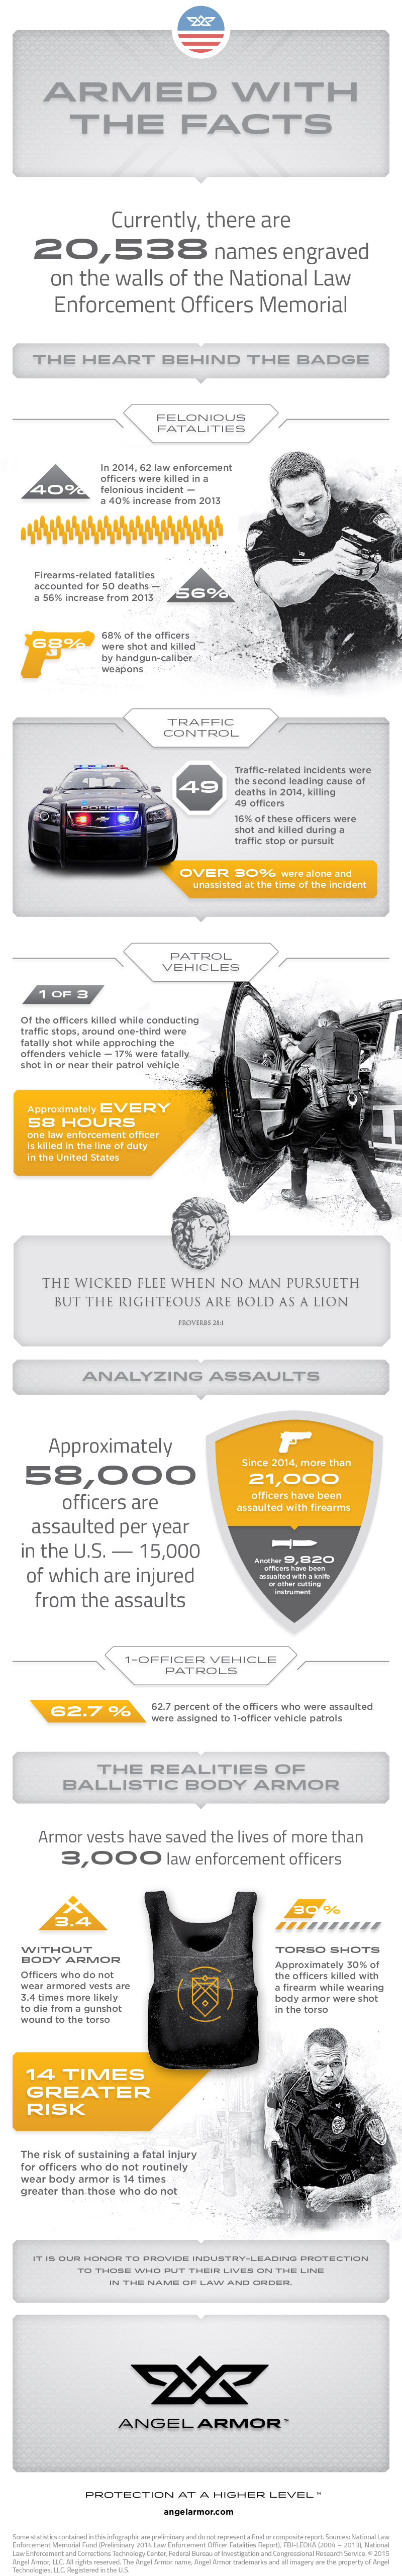 Angel-Armor-Infographic-800